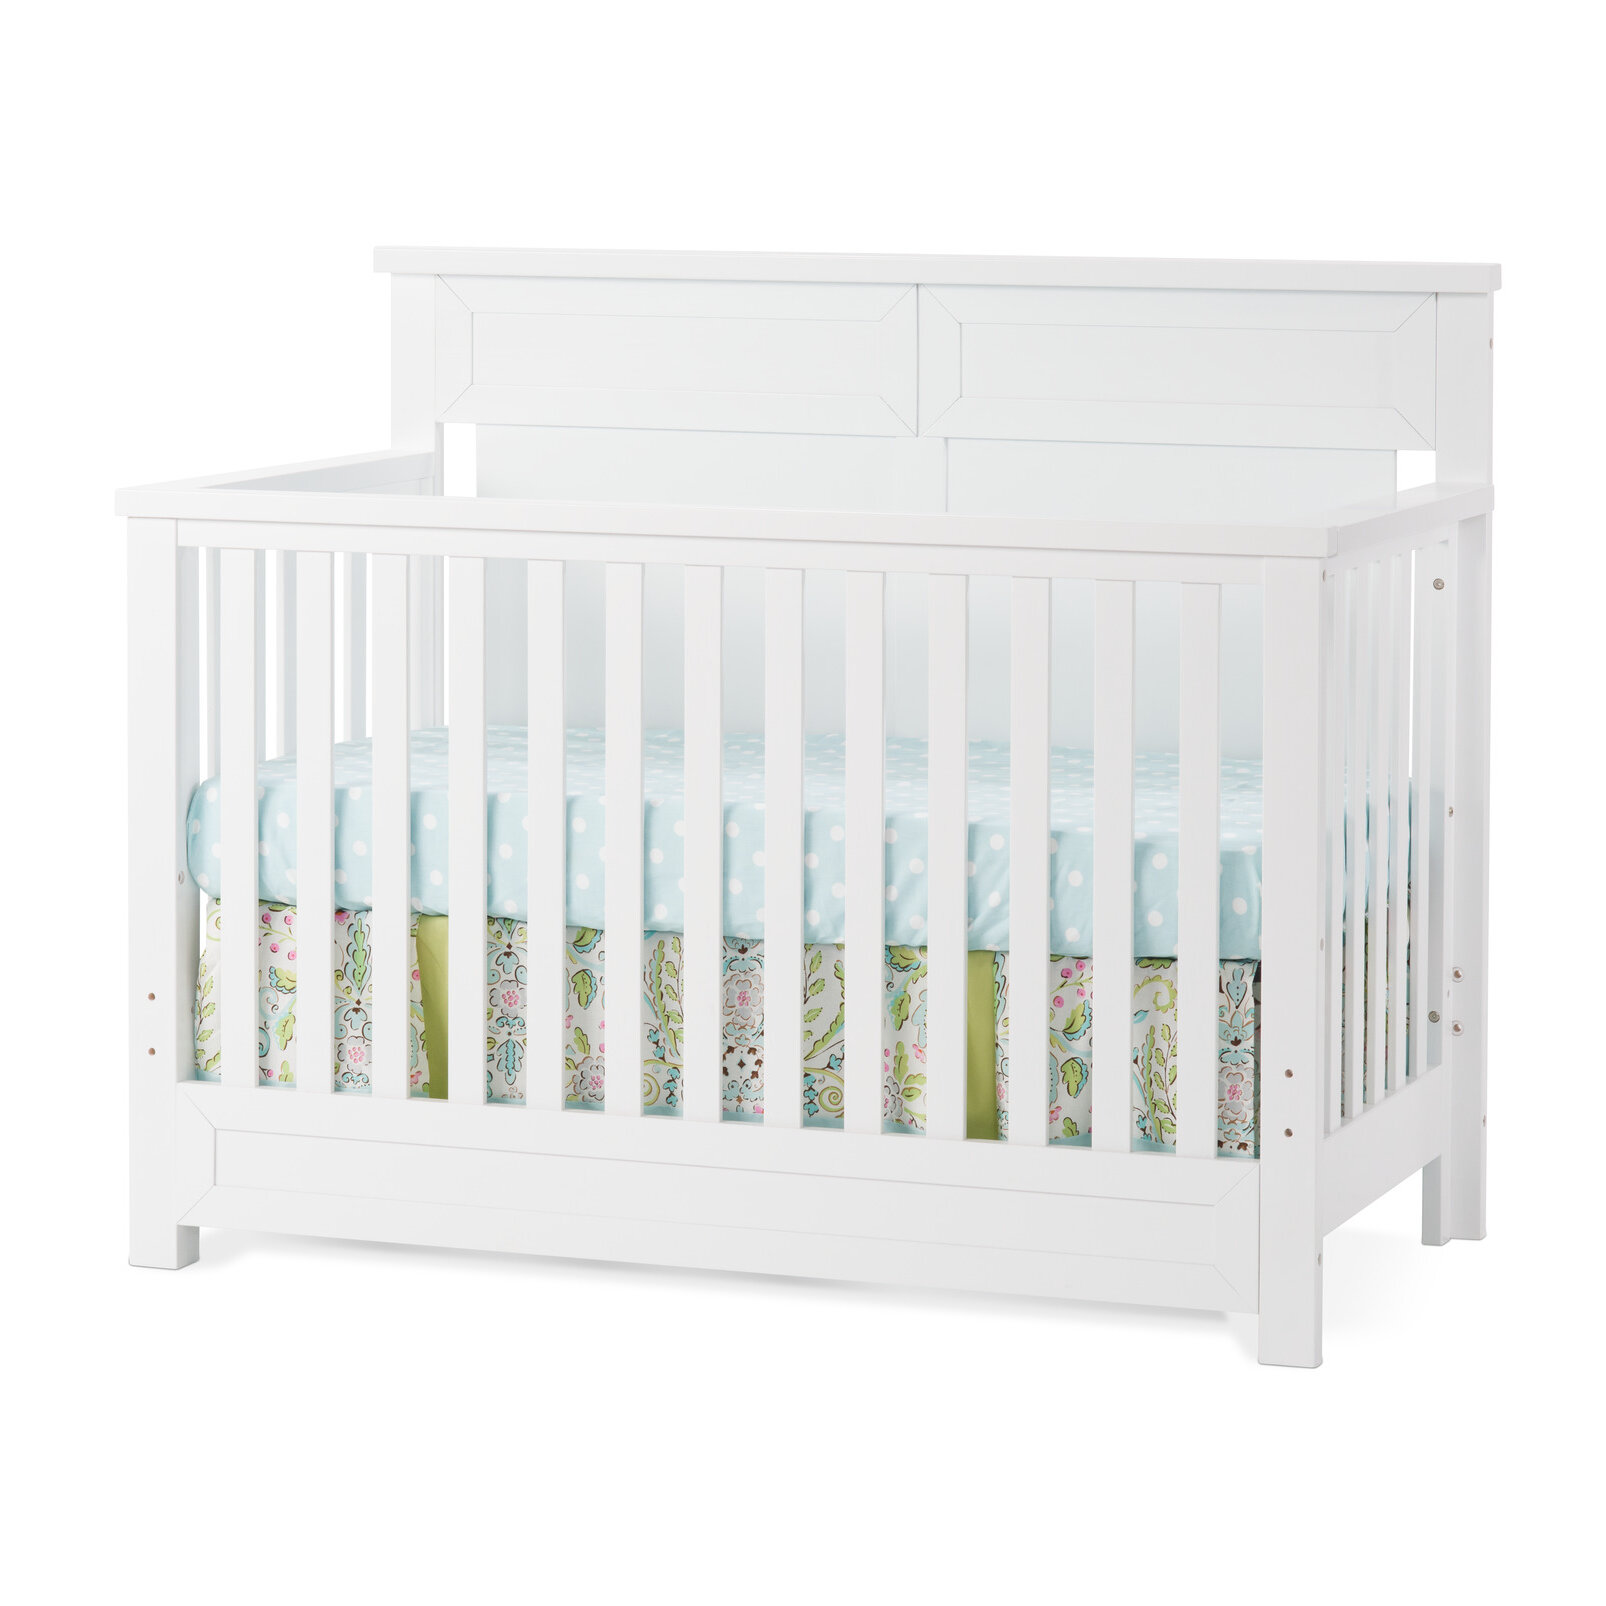 with crib classic item for convertible madison number me grow products complete kit cribs mein legacy ingrow kids